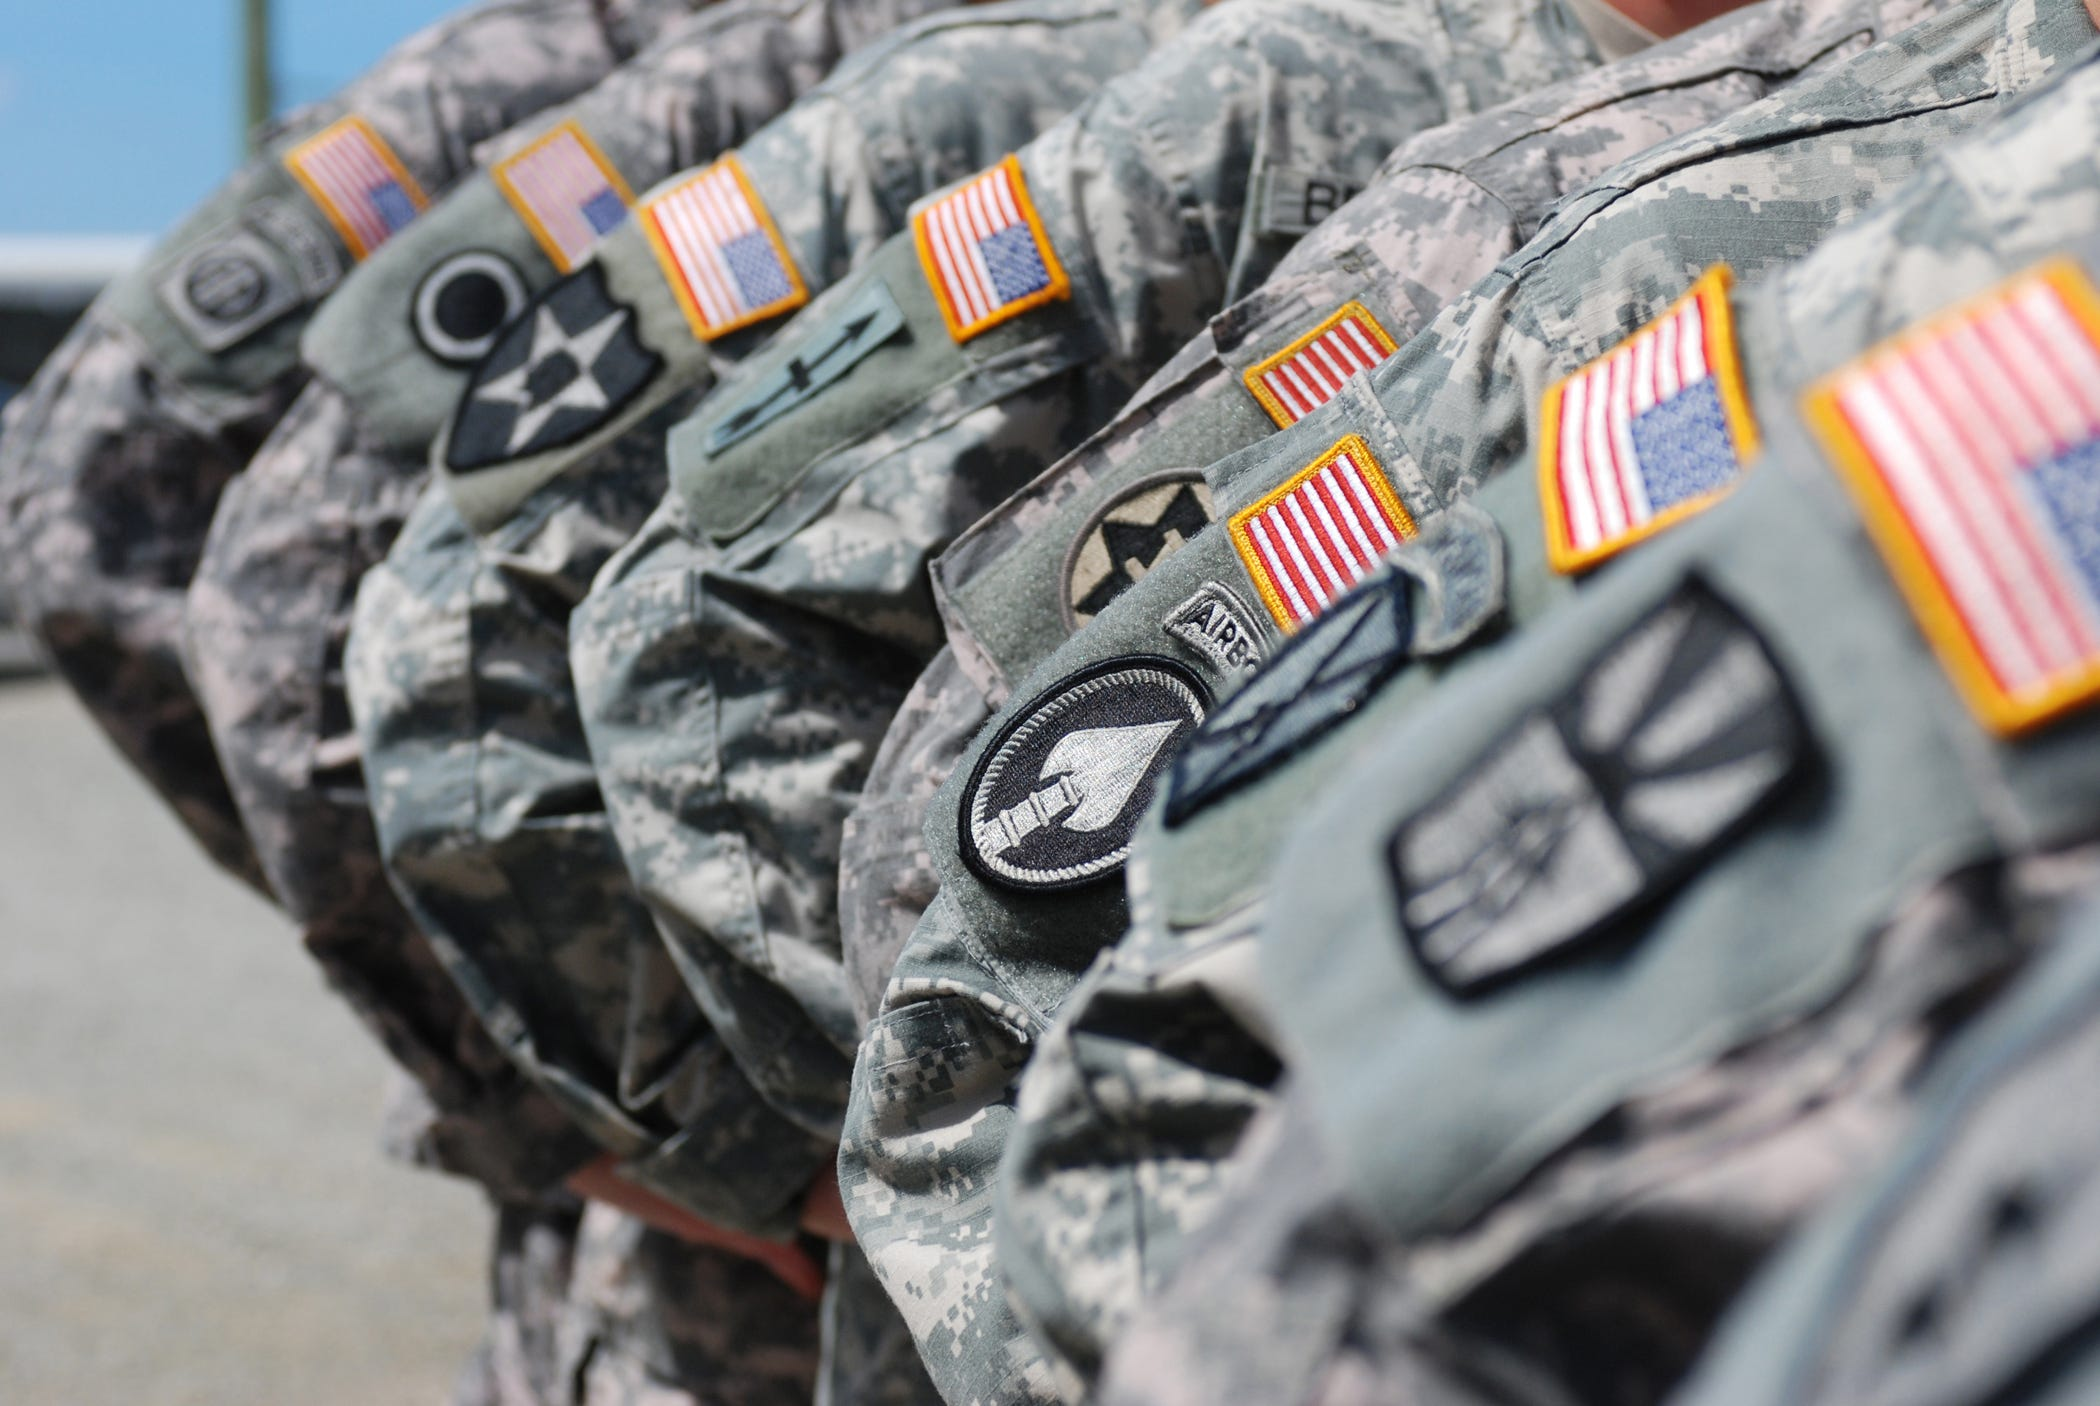 Right arm combat patches represent Soldiers' times serving with particular units in combat zones. Joint Task Force Guantanamo Soldiers have a wealth of experience and have served with numerous units in combat zones in their combined years of service. JTF Guantanamo conducts safe and humane care and custody of detained enemy combatants. The JTF conducts interrogation operations to collect strategic intelligence in support of the Global War on Terror, and supports law enforcement and war crimes investigations. JTF Guantanamo is committed to the safety and security of American service members and civilians working inside its detention facilities.